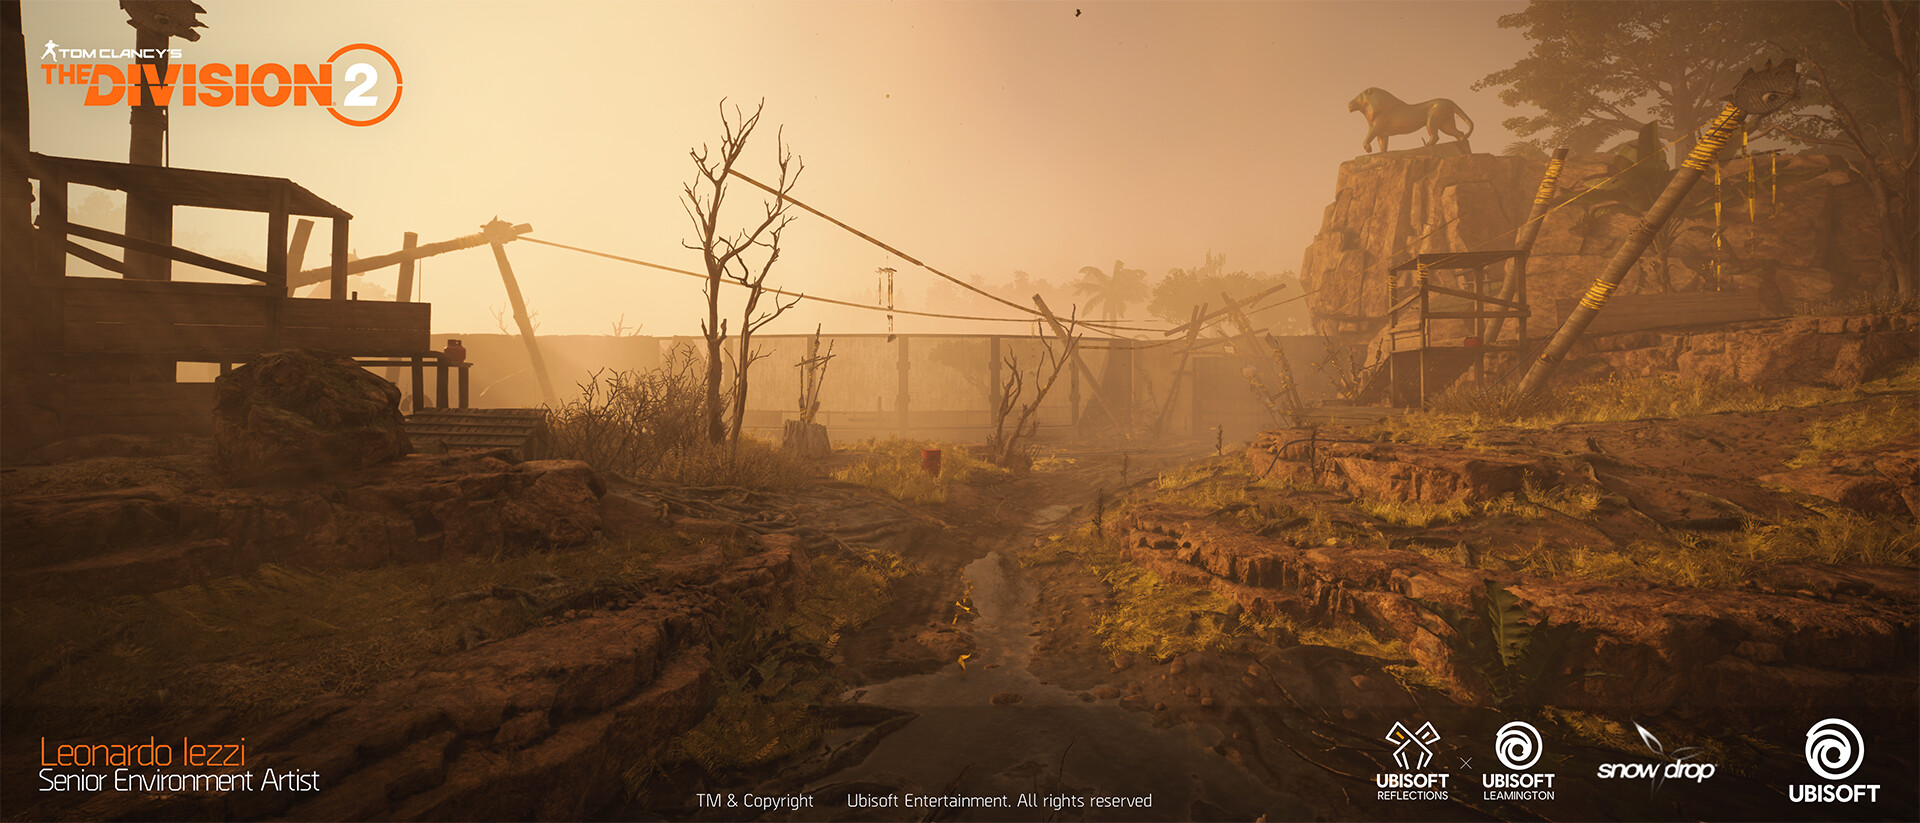 Leonardo iezzi leonardo iezzi the division 2 zoo environment art 06 lion 019 wide